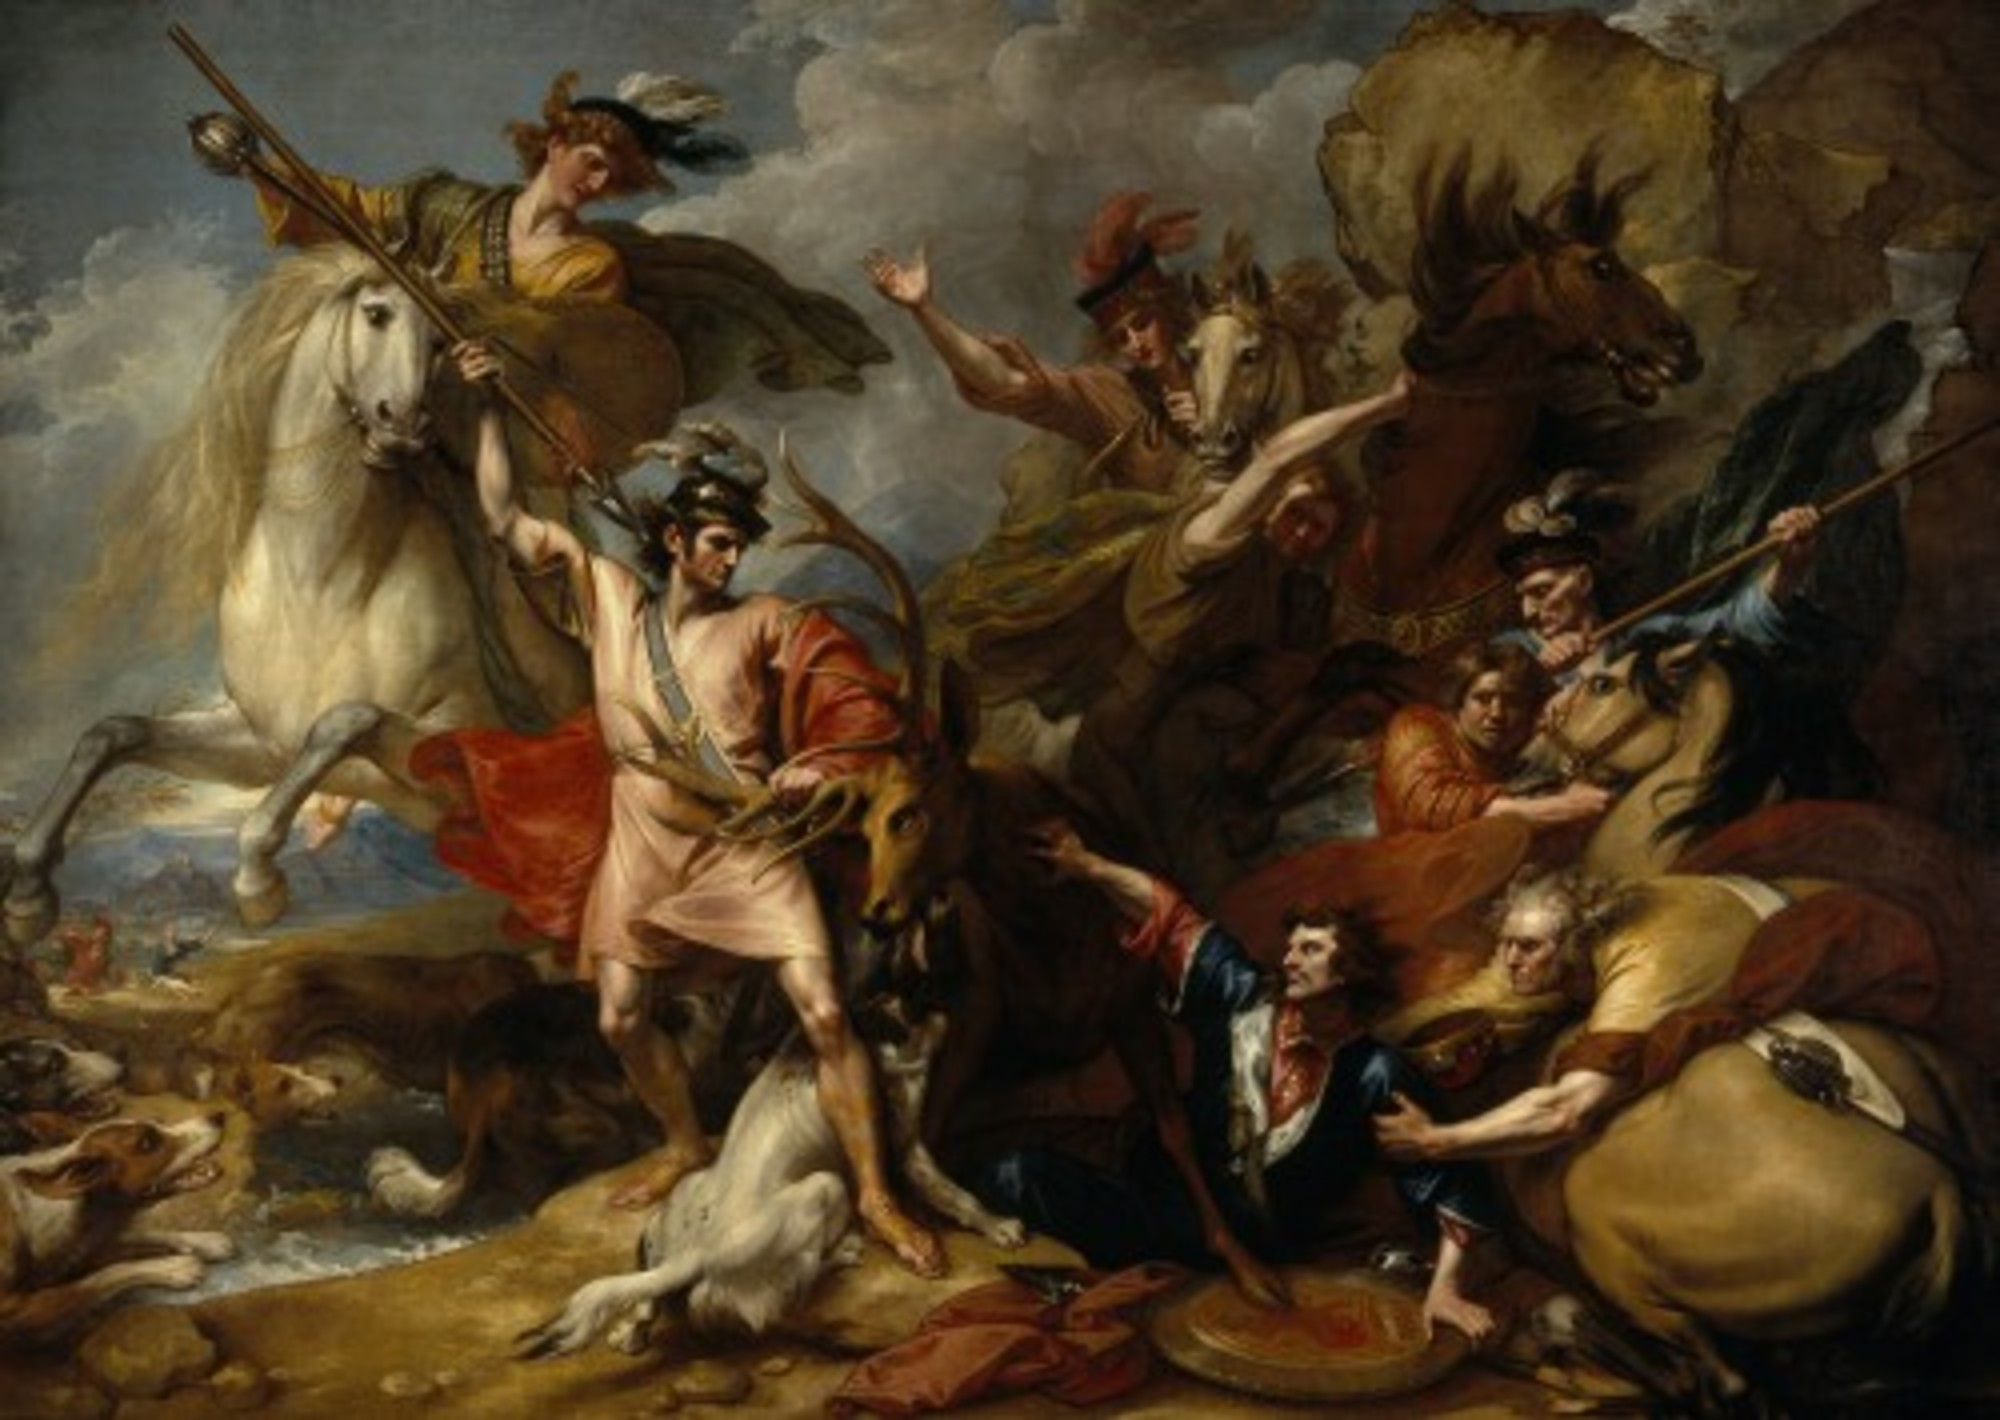 Benjamin-West---Alexander-III-of-Scotland-Rescued-from-the-Fury-of-a-Stag-by-the-Intrepidity-of-Colin-Fitzgerald-The-Death-of-the-Stag---Google-Art-Project.jpg